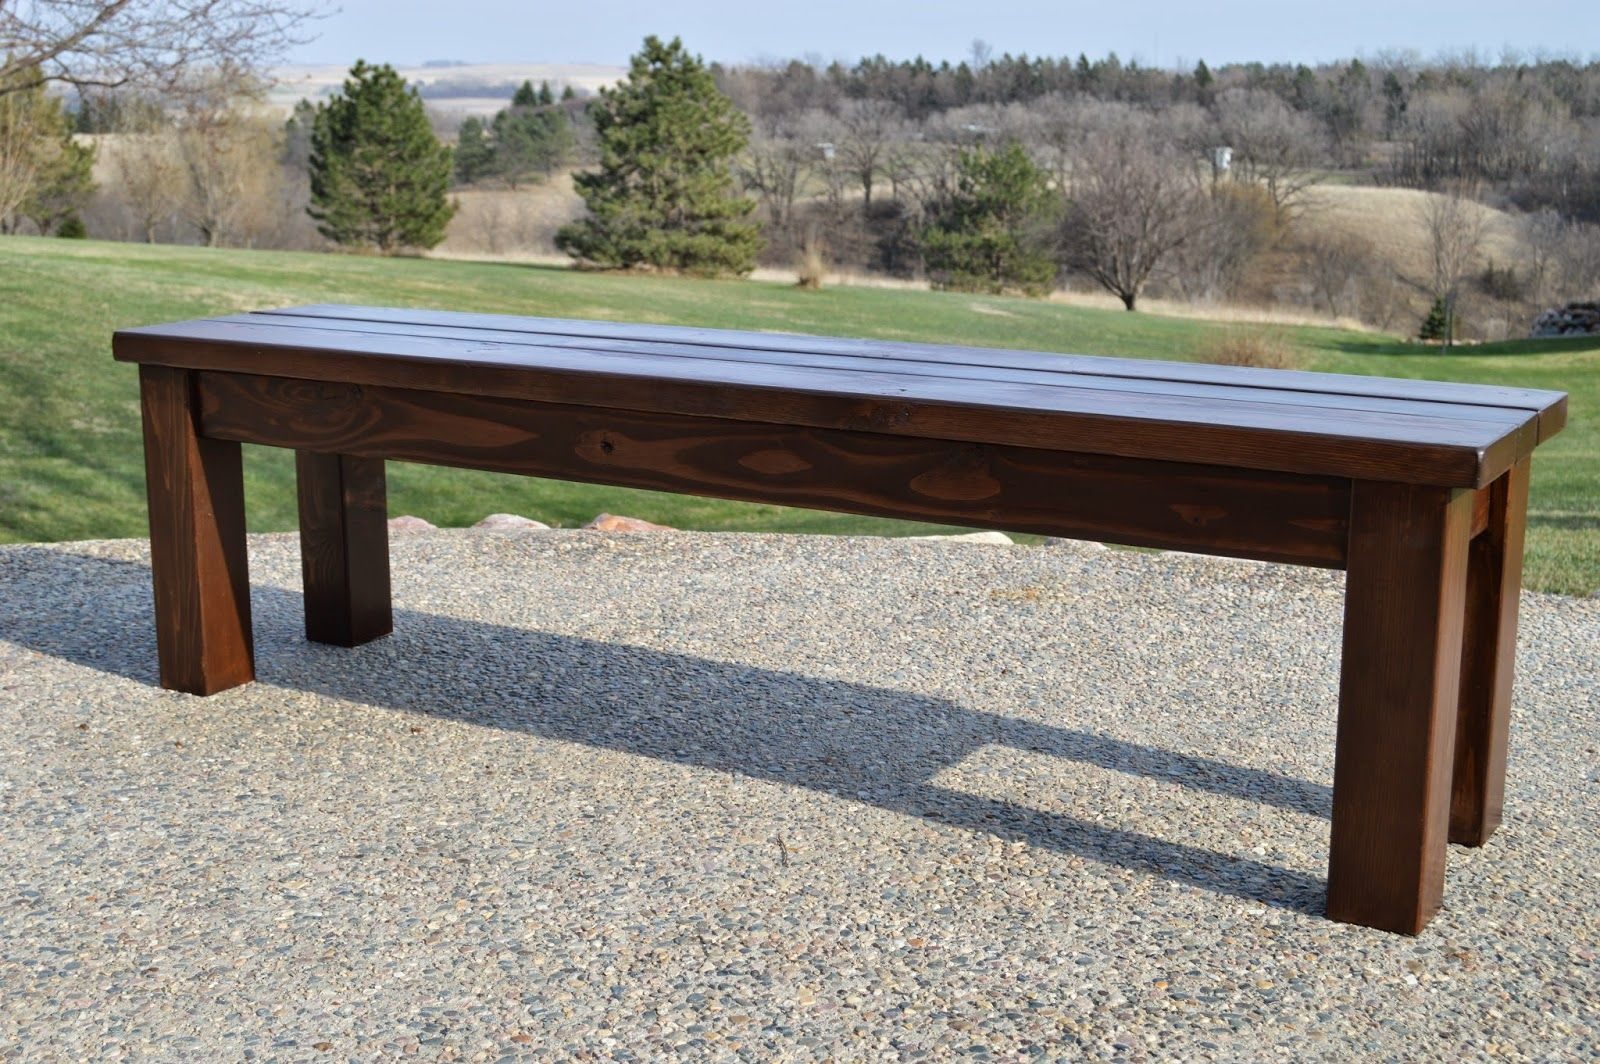 Bench Seating For Patio Table   KRUSEu0027S WORKSHOP: Simple Indoor/Outdoor  Rustic Bench Plan